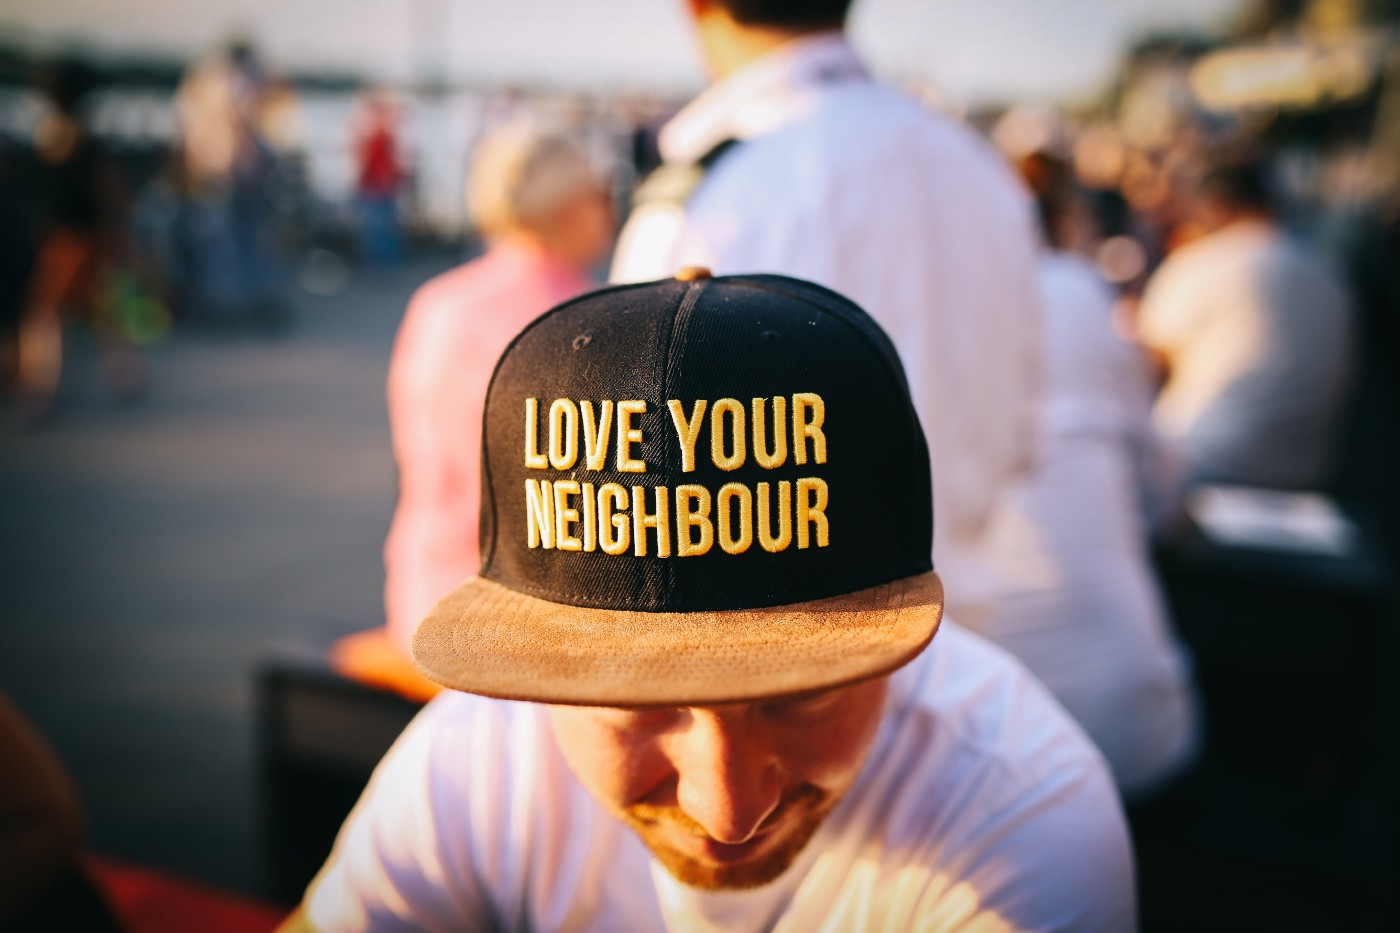 """A person shows their cap which says """"love your neighbour""""."""